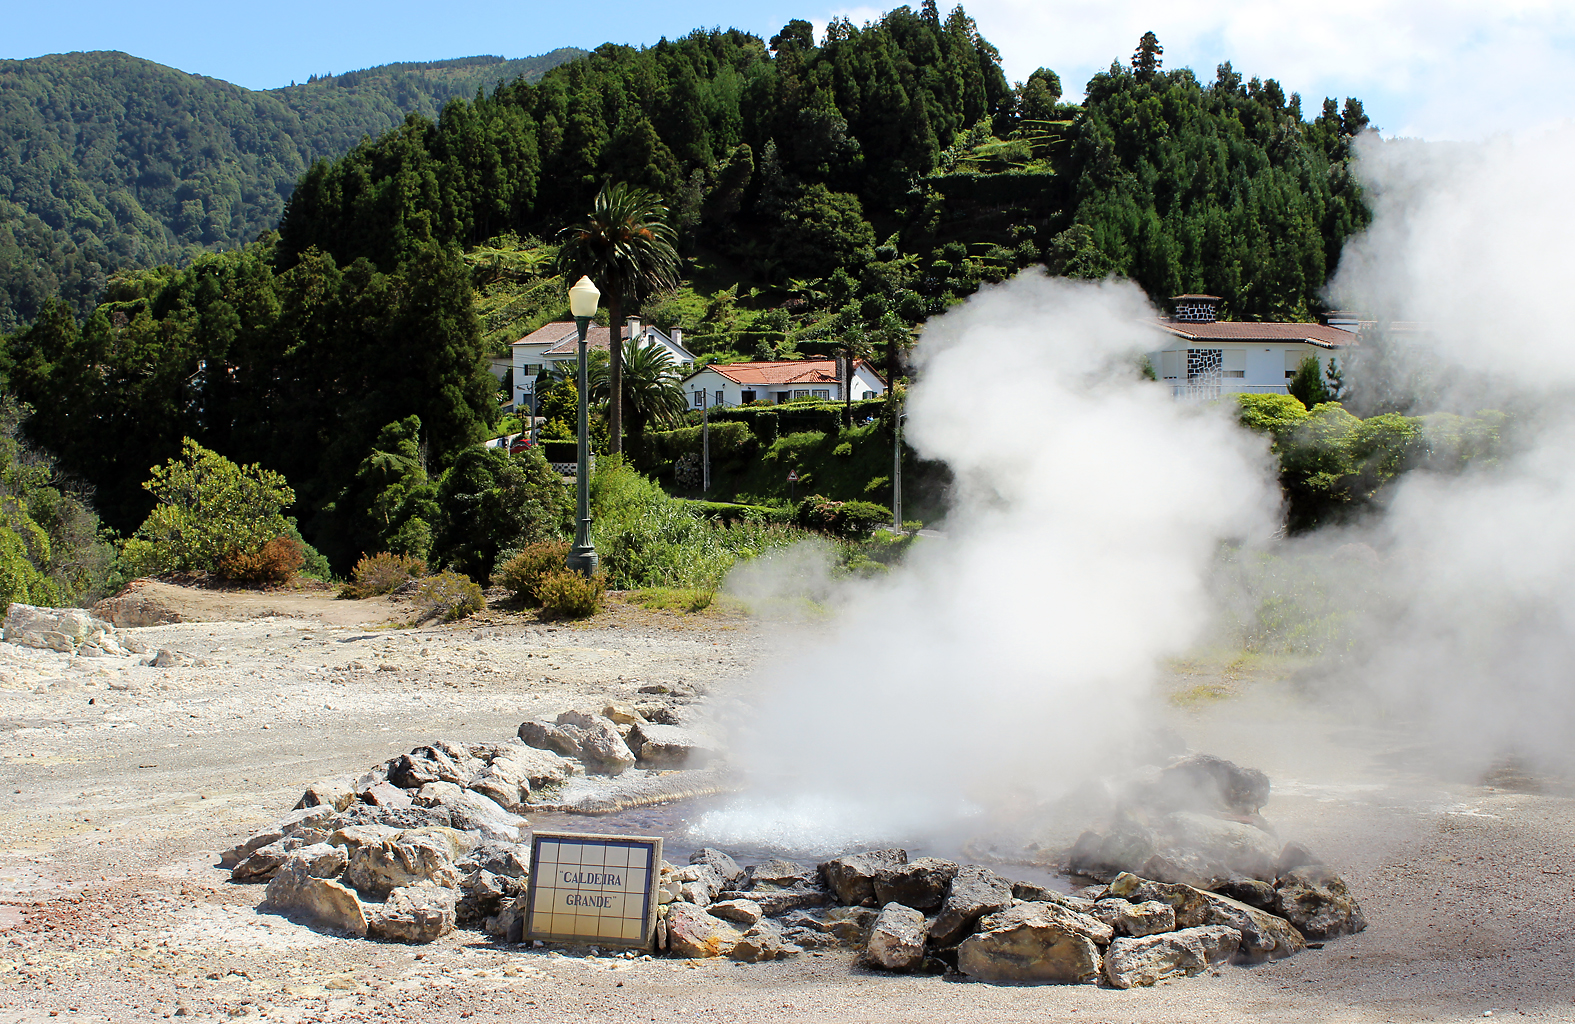 Steamin', one of the many hot water springs in Furnace valley